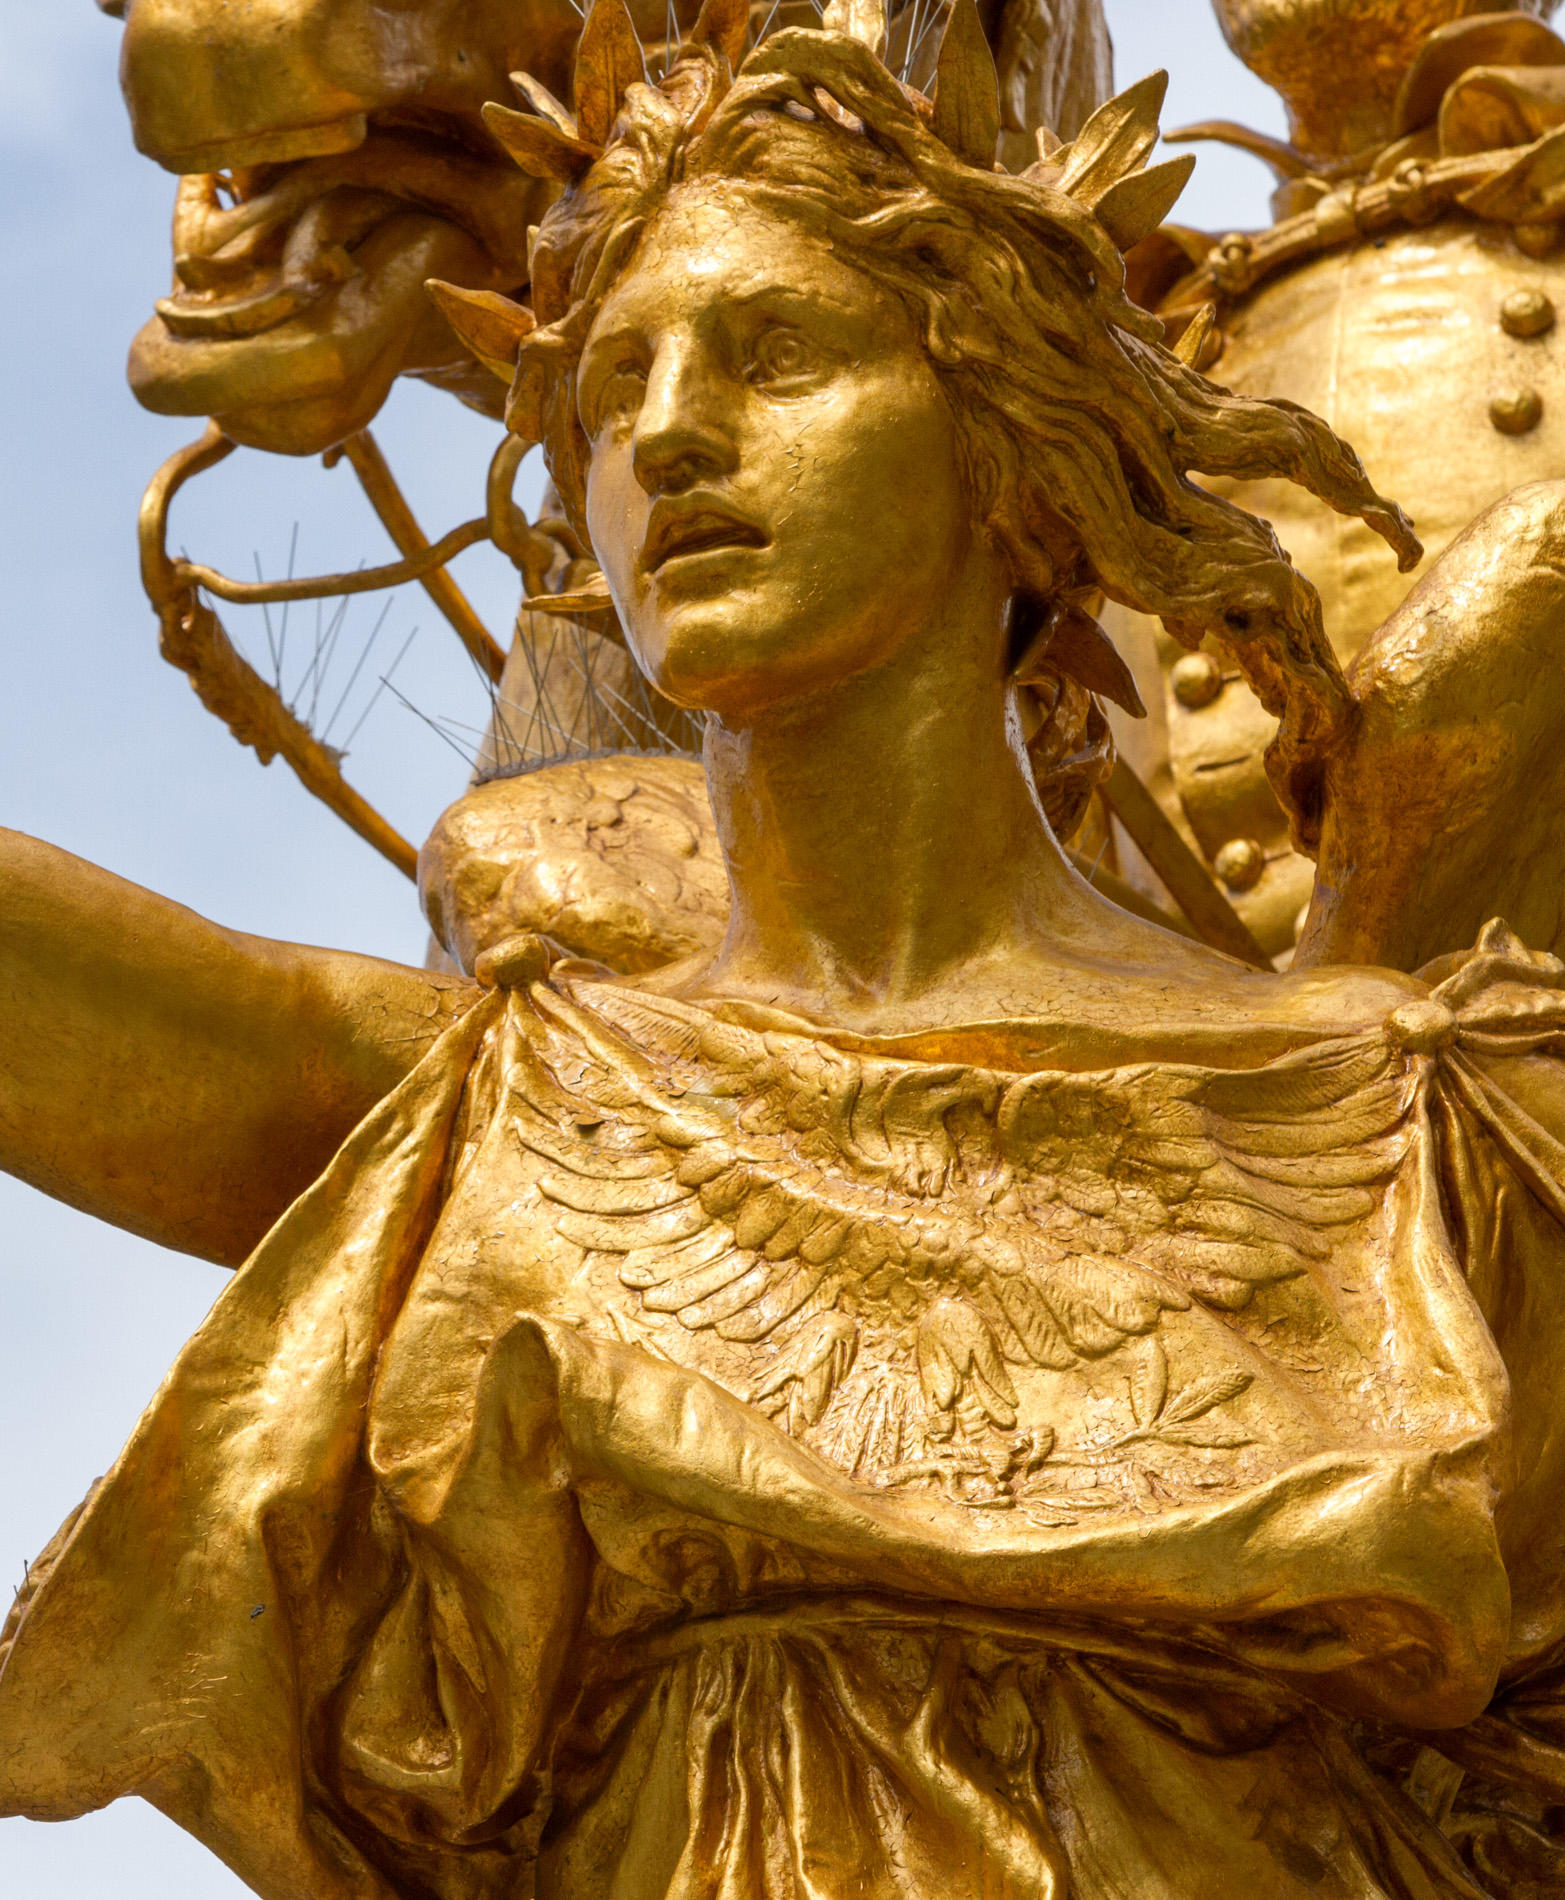 Detail showing the personification of Victory, modeled by Hettie Anderson, in Augustus Saint-Gaudens's William Tecumseh Sherman Monument